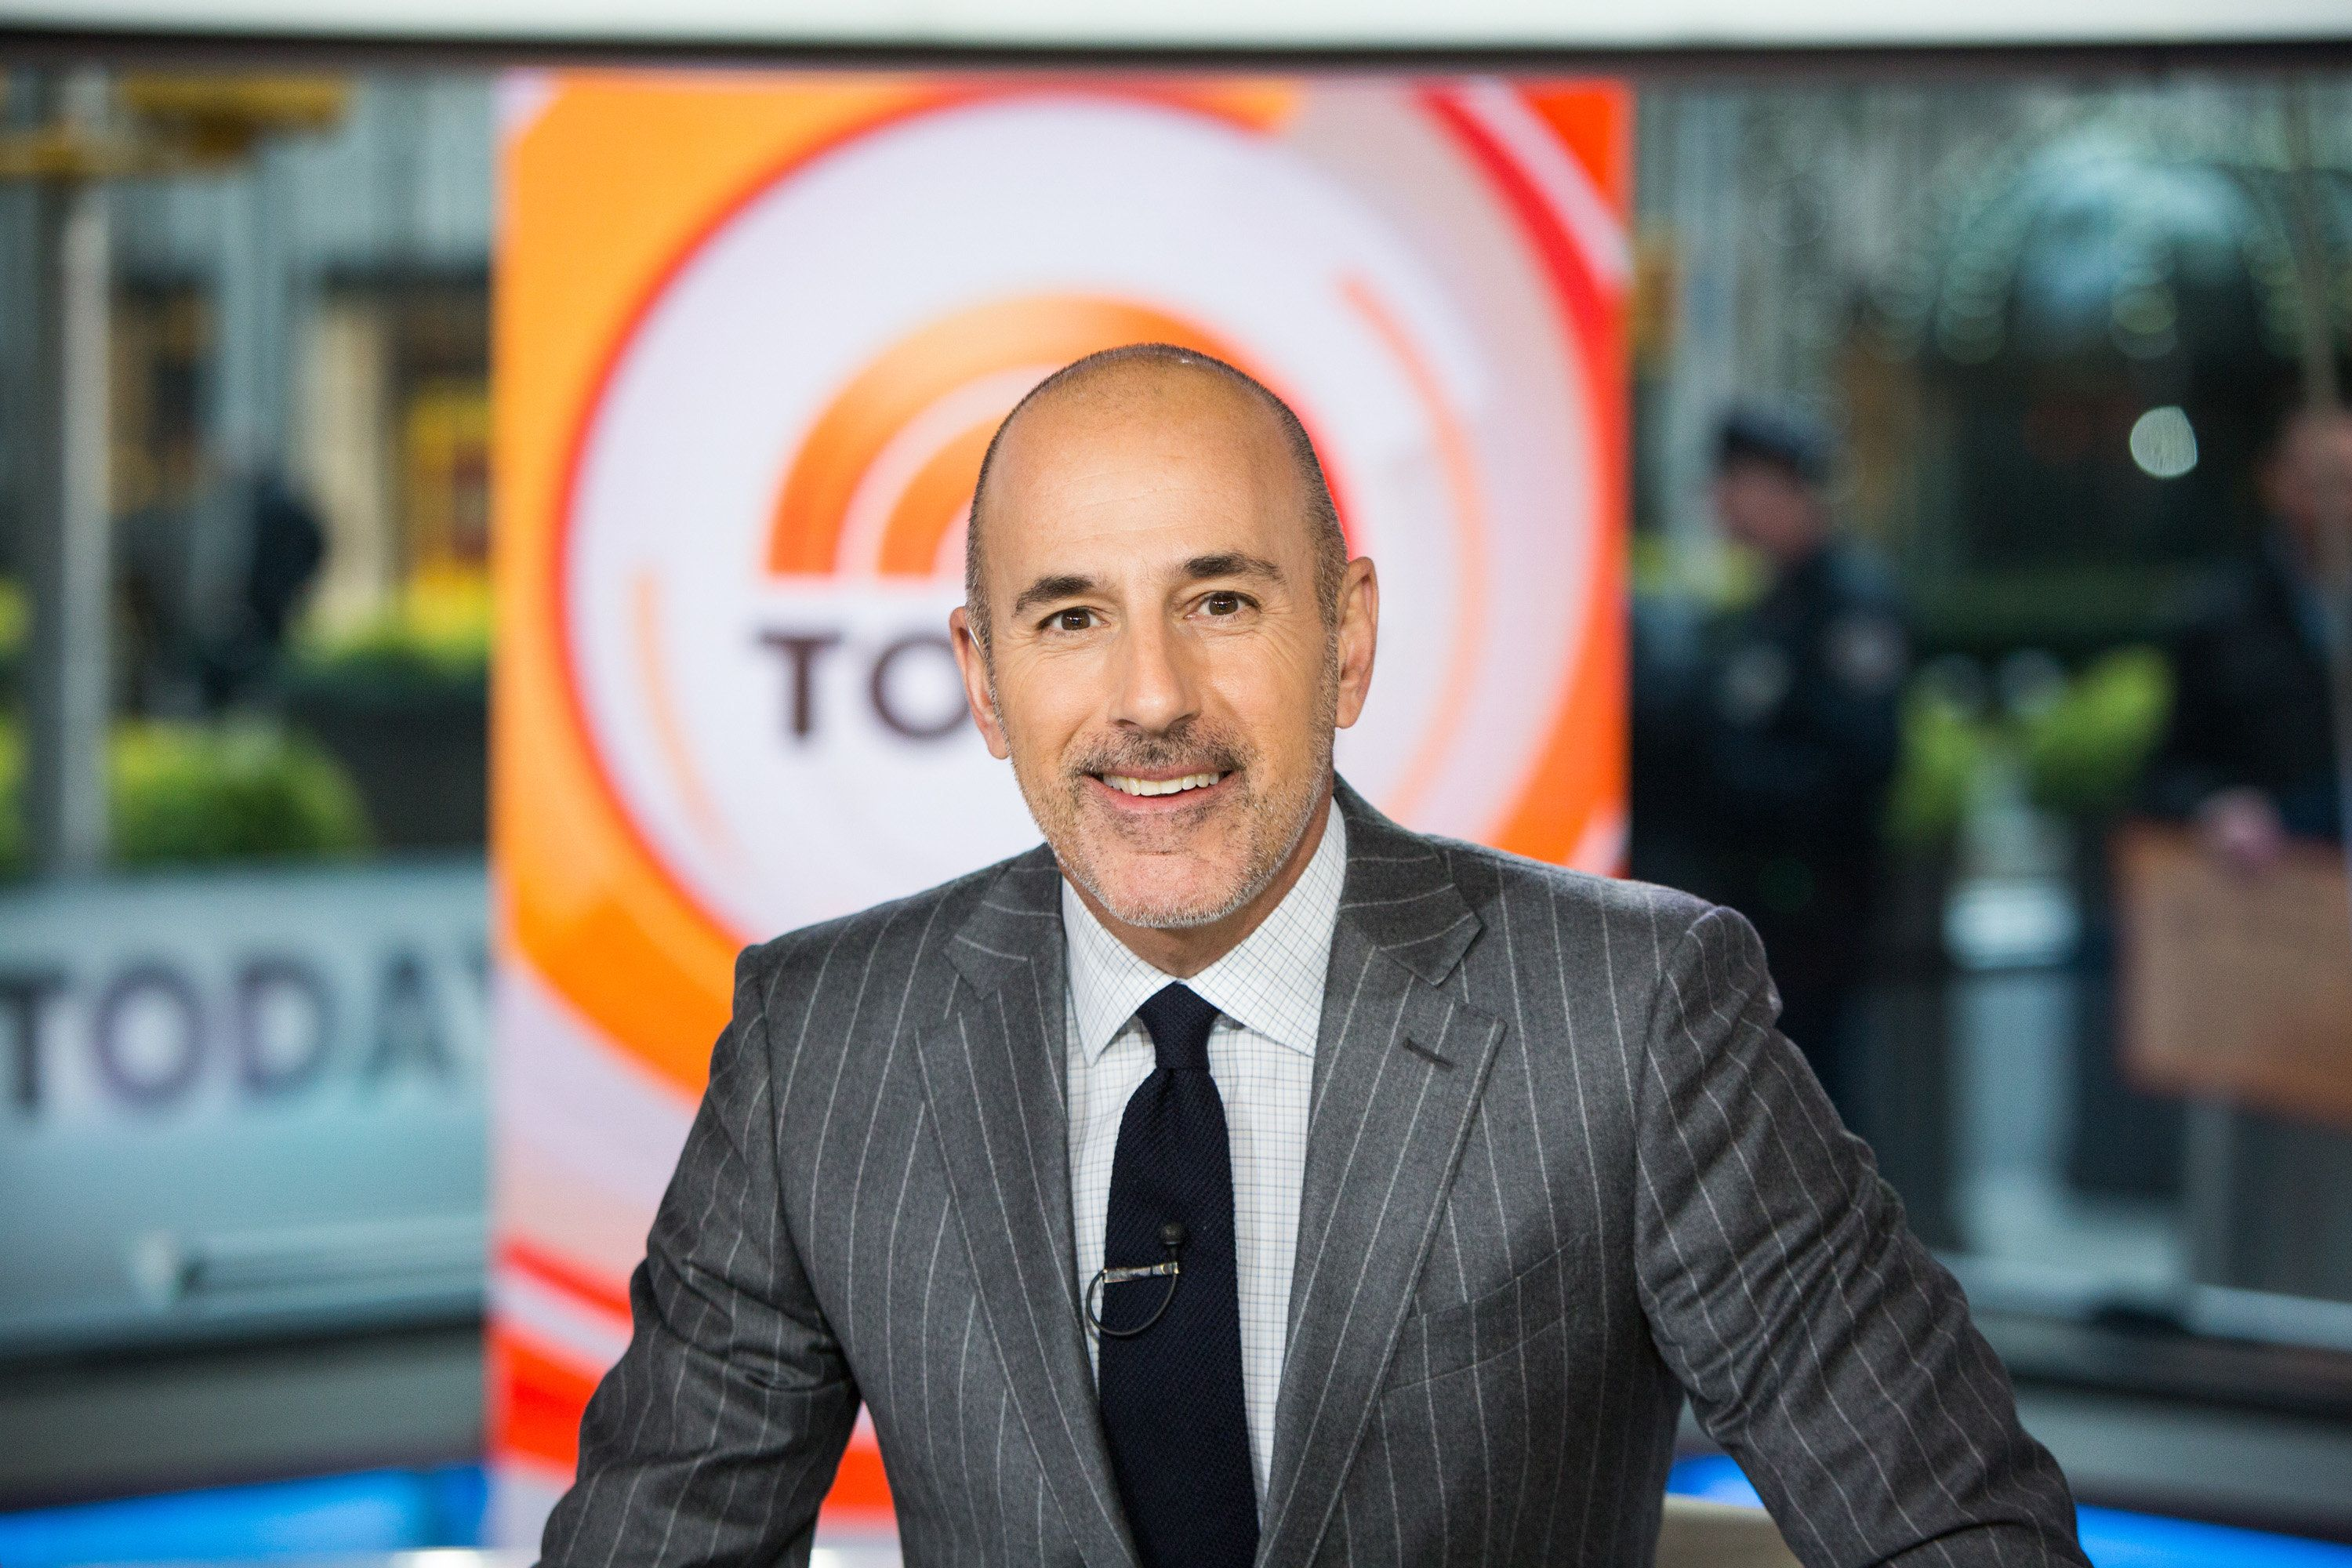 Matt Lauer Speaks Out After Firing From 'Today' Show Over Sexual